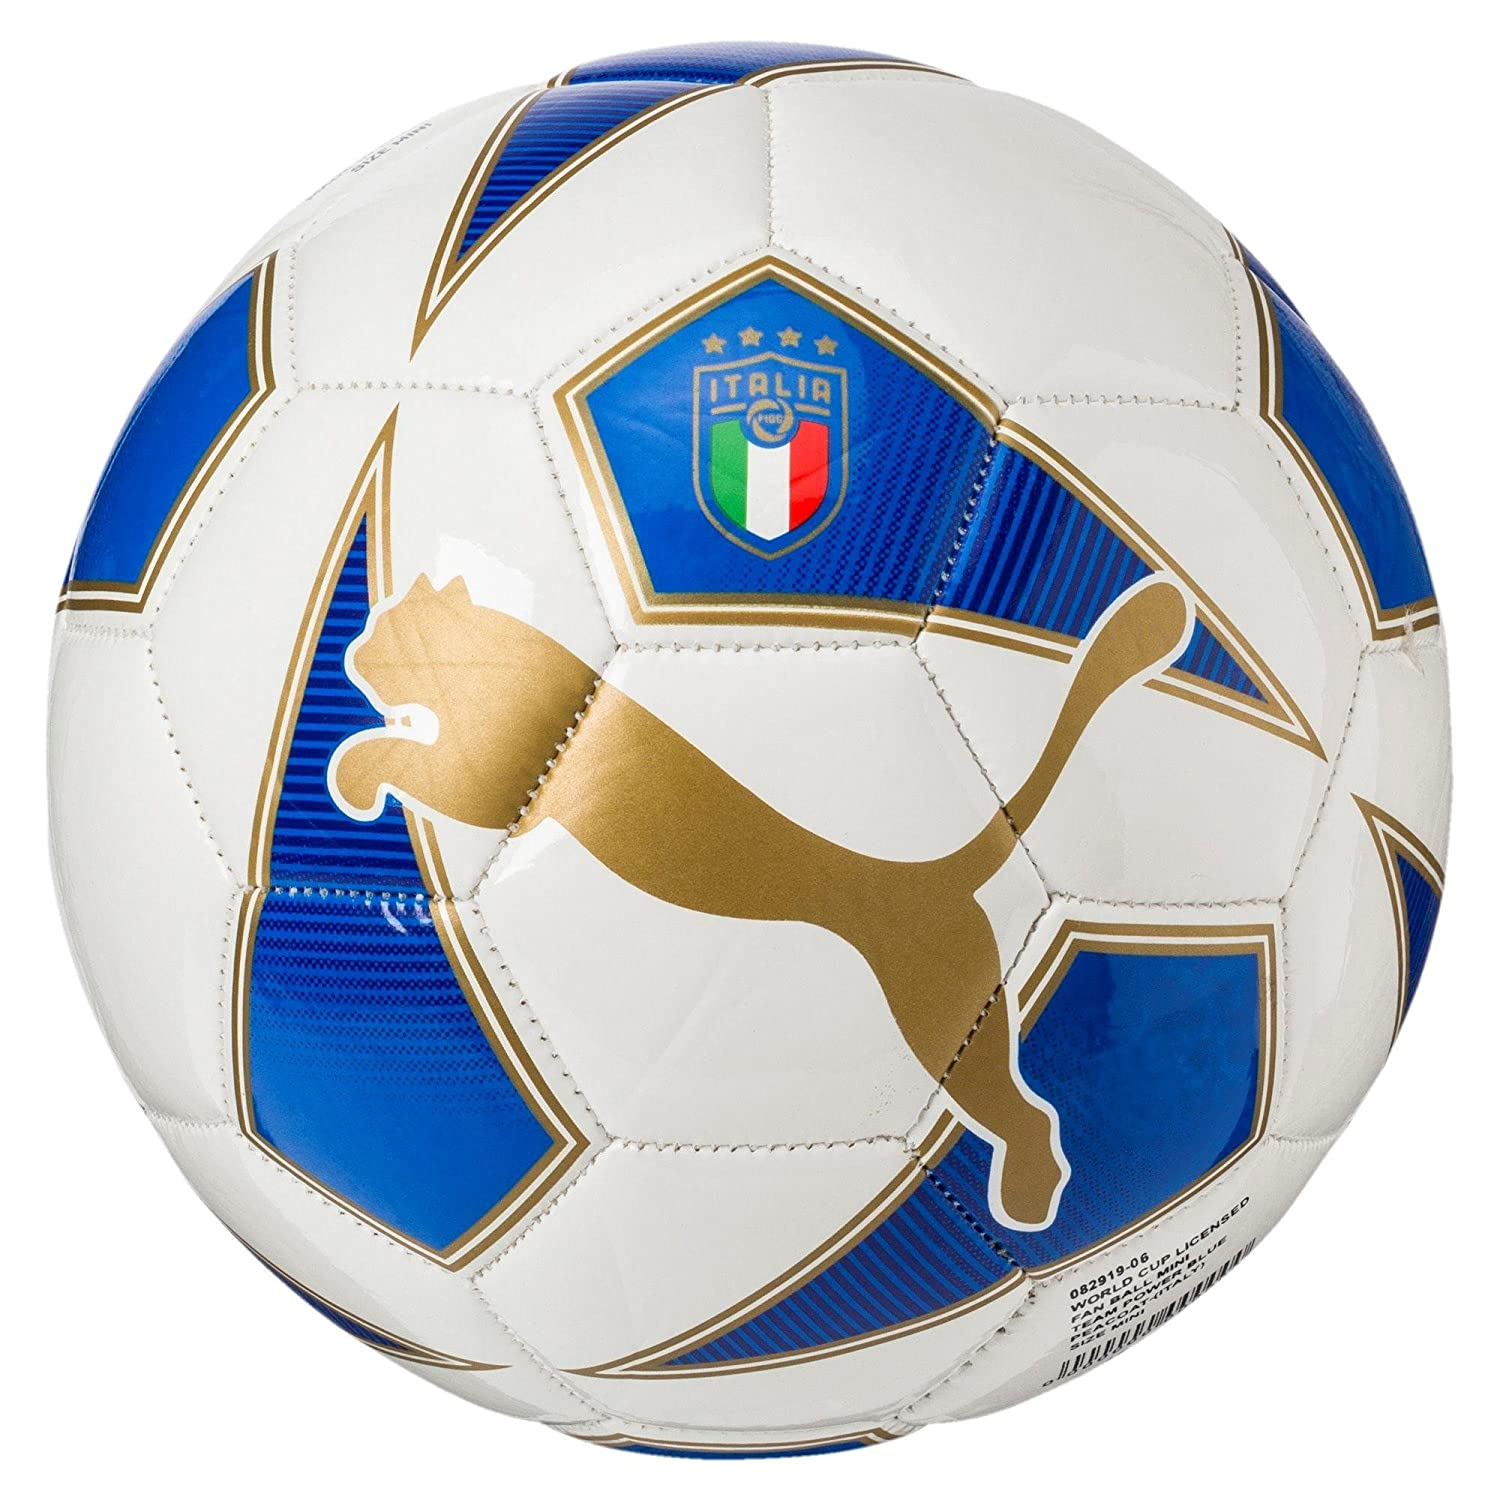 Puma World Cup licensed Fan Ball Mini TEAM POWER BLUE 18 20 Italy 9afdb745bde19